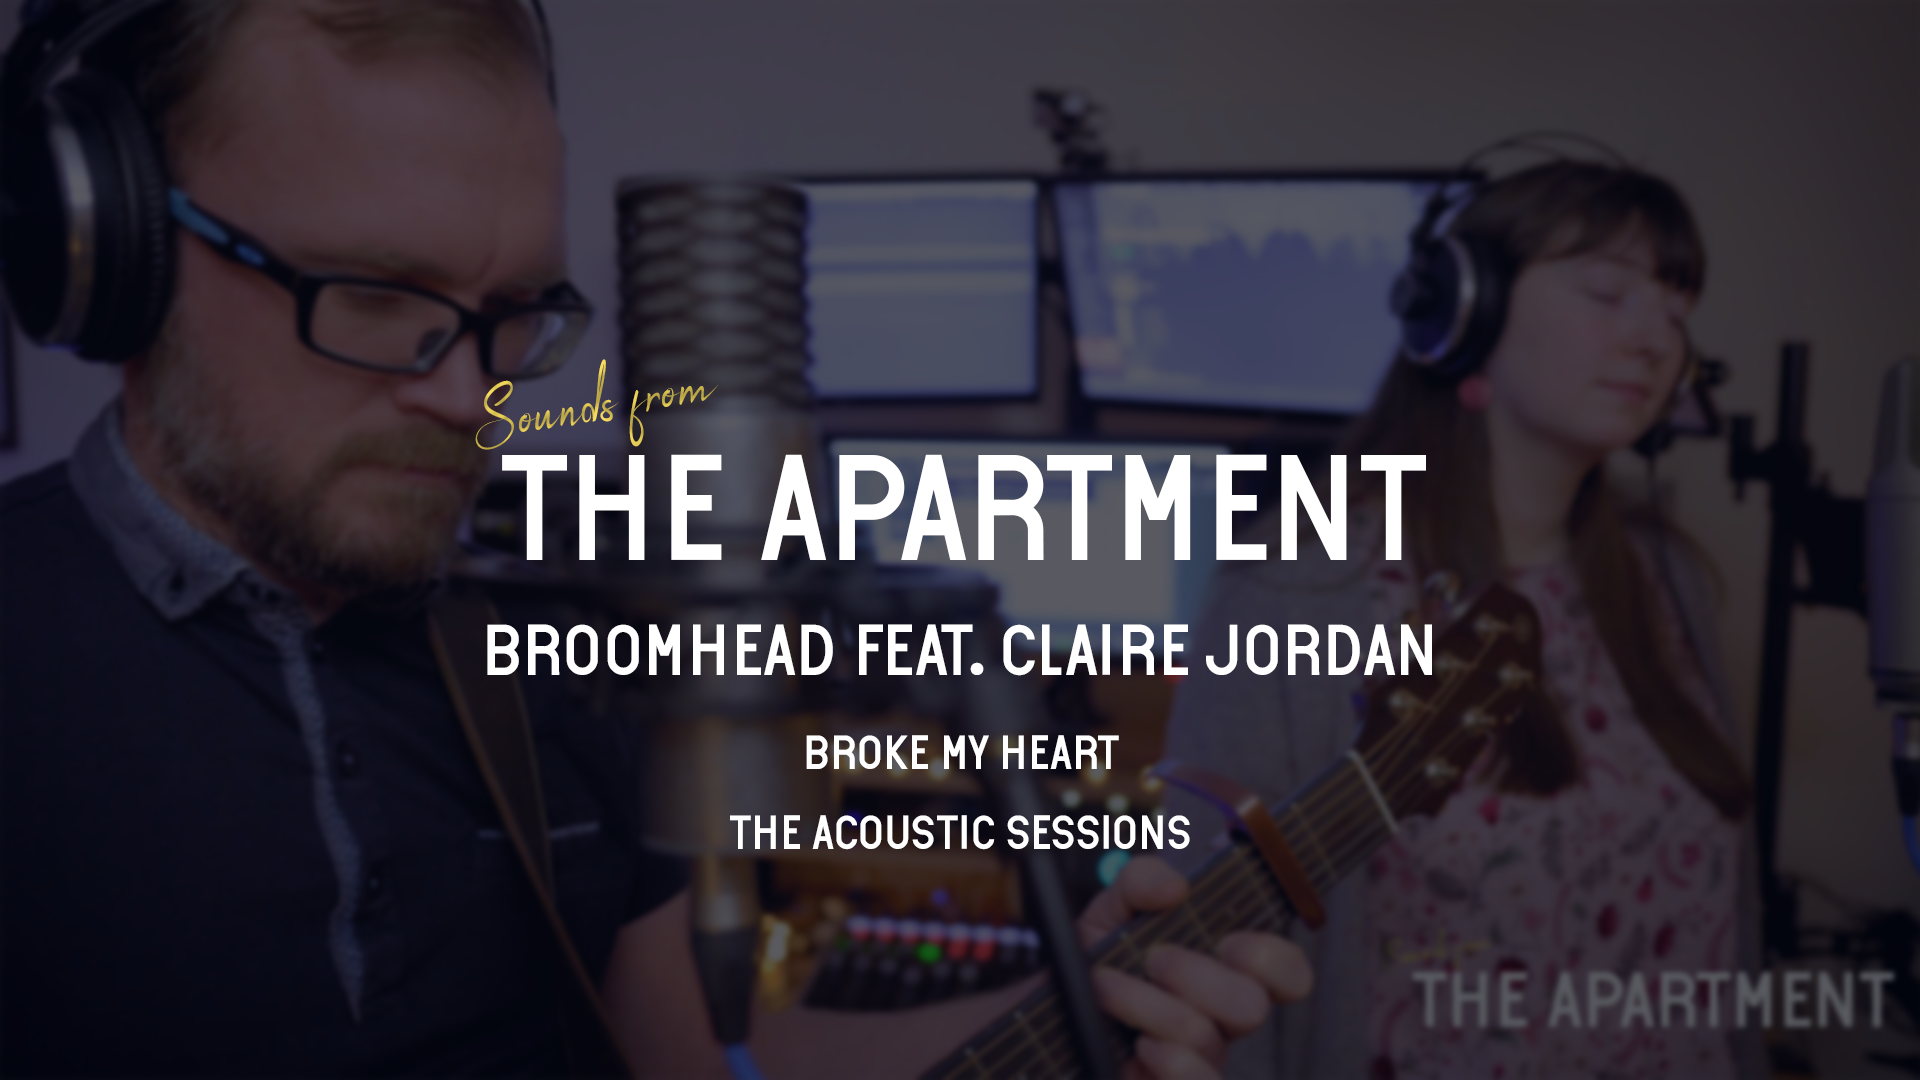 Sounds from the apartment broomhead artist showcase